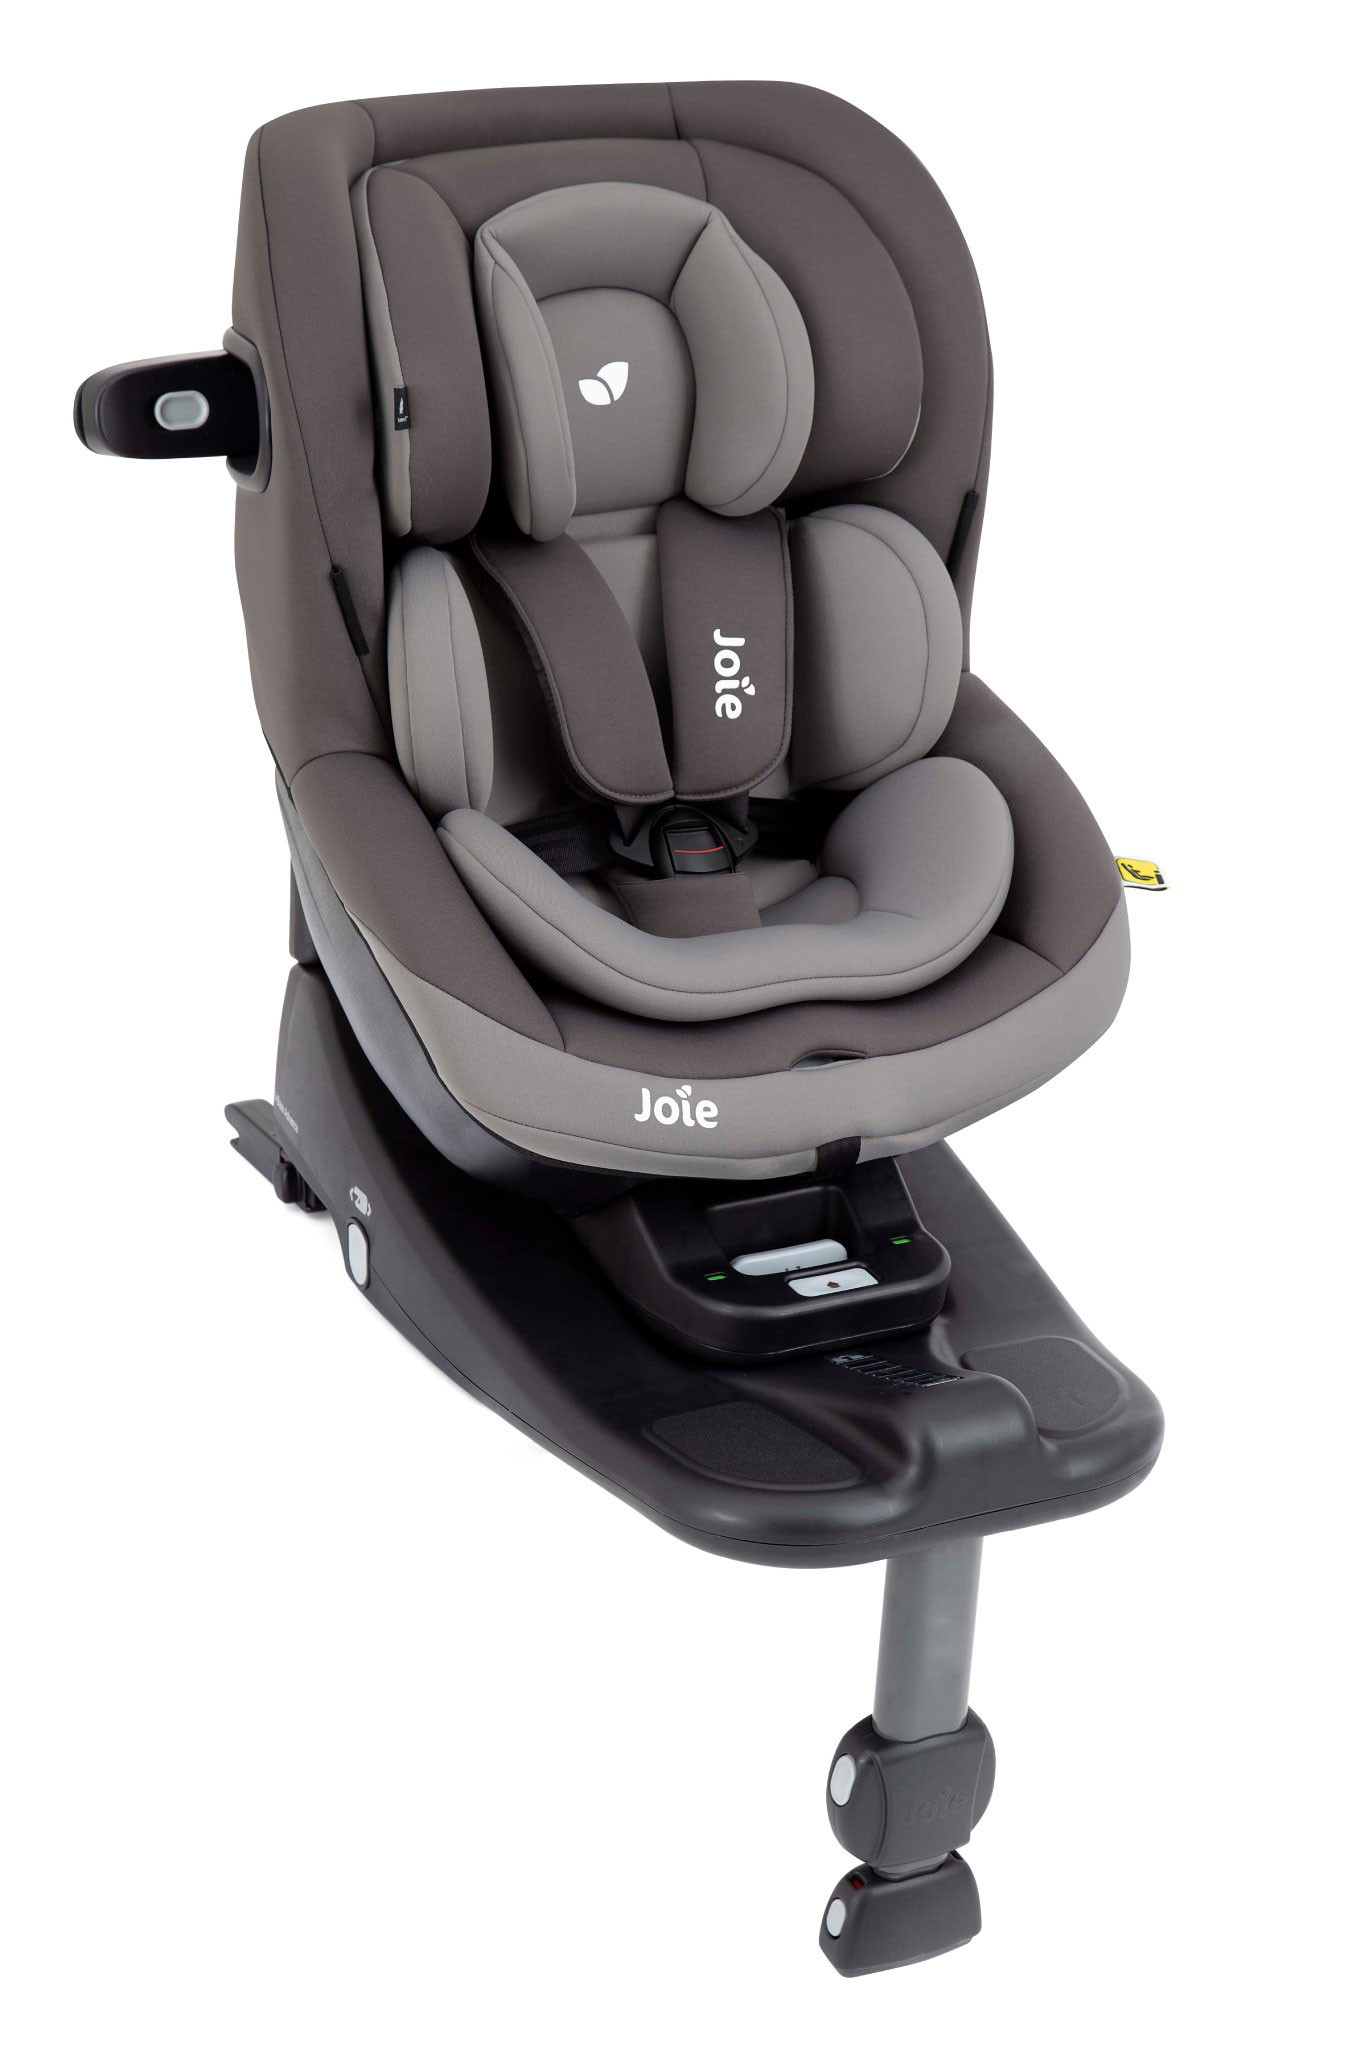 Joie Baby Car Seat Usa Joie I Venture Car Seat Reviews